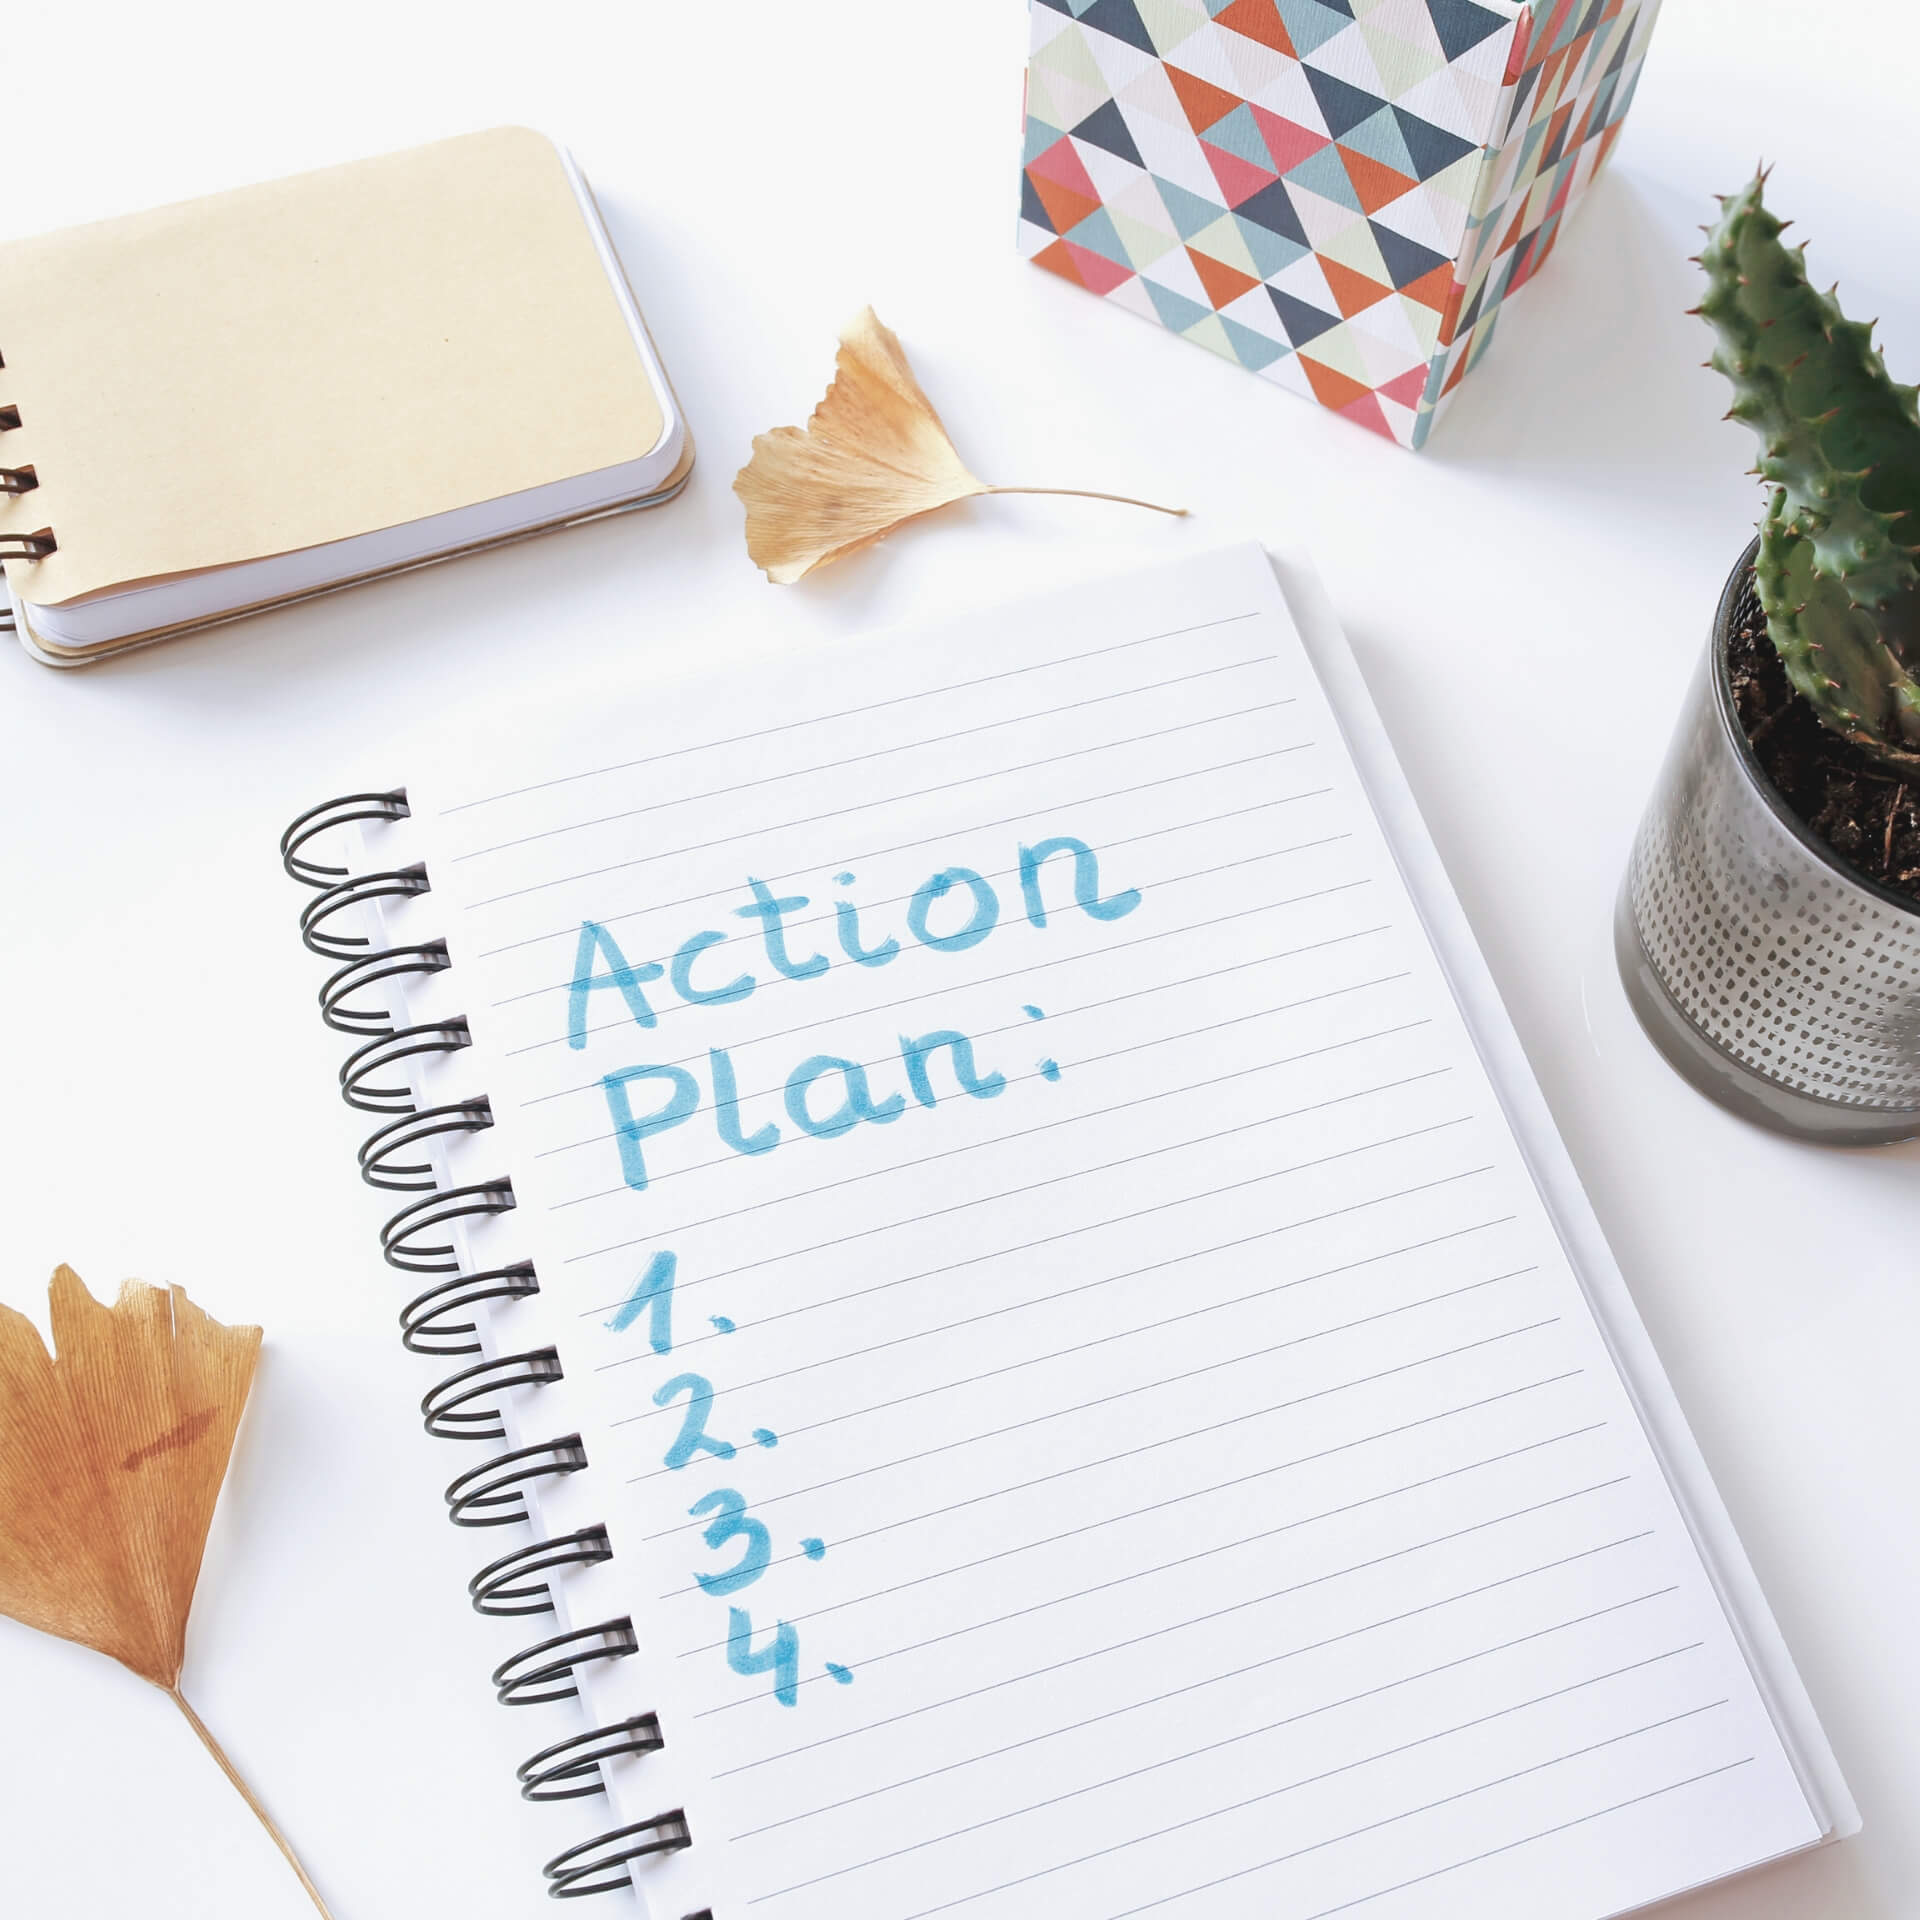 "How to Write a Blog Post: Notebook with the title ""Action Plan"" at the top and blank steps 1, 2, 3, and 4."